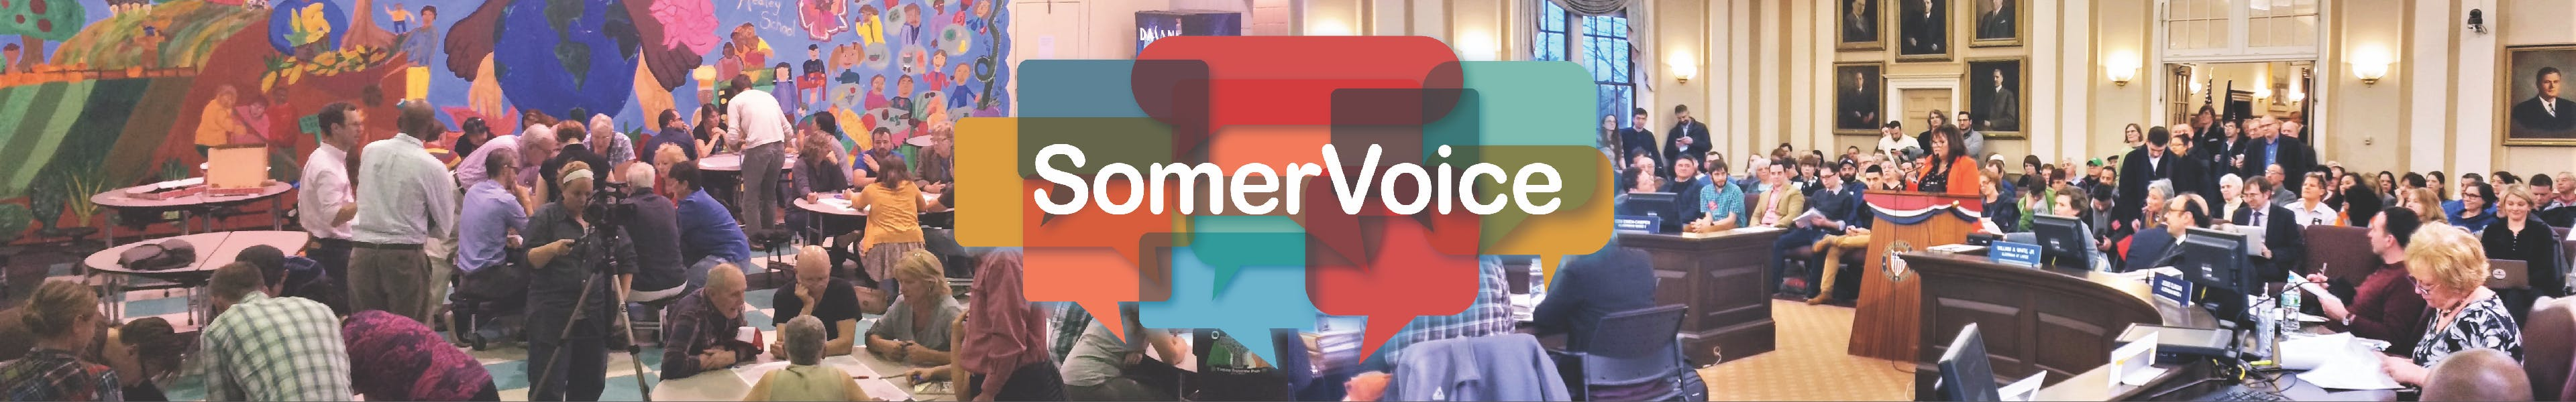 Welcome to SomerVoice, the city's online engagement platform!